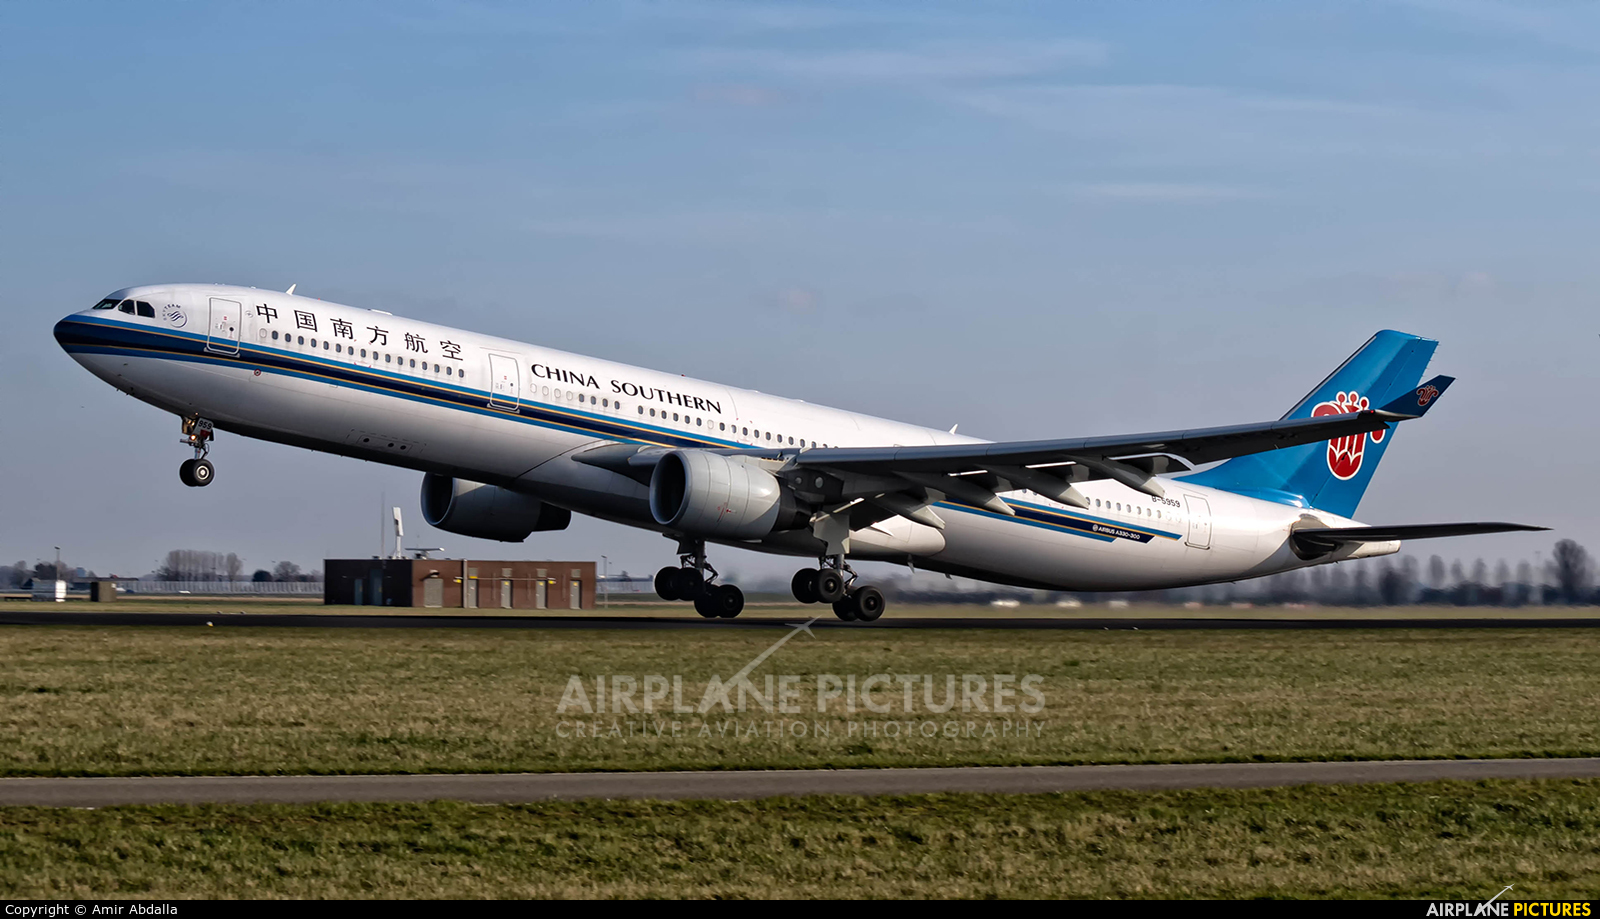 China Southern Airlines B-5959 aircraft at Amsterdam - Schiphol